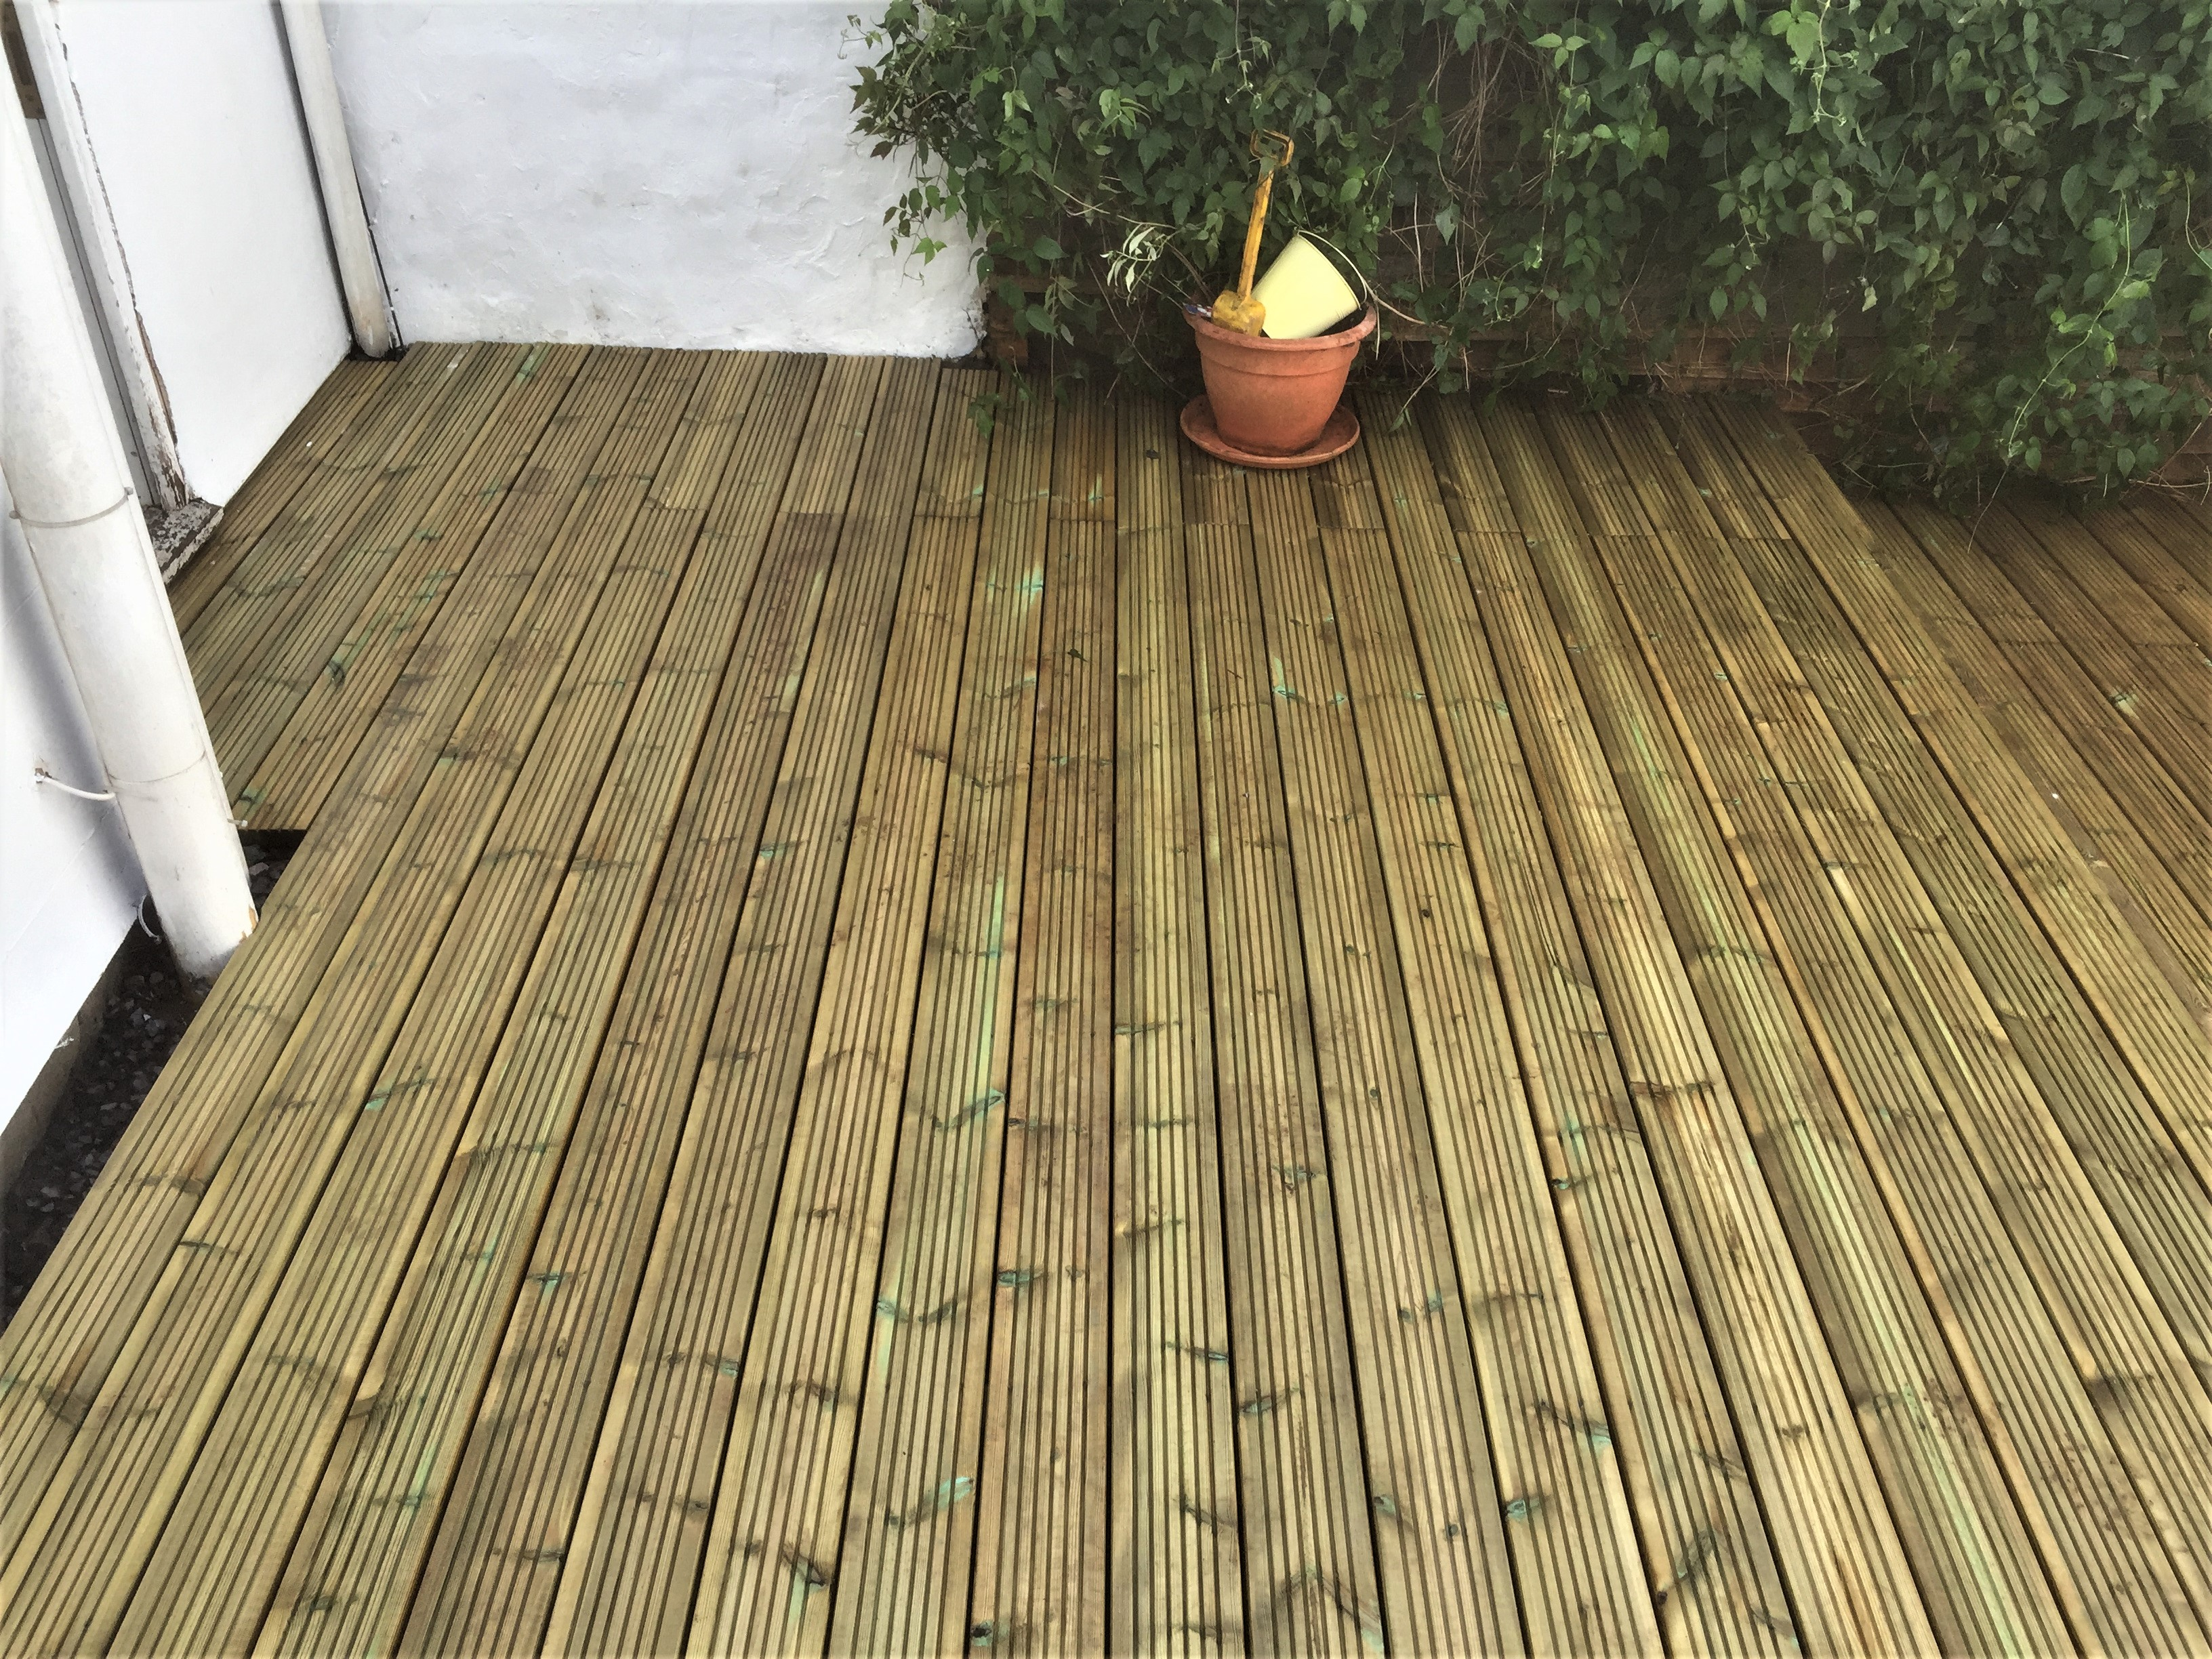 Completed decking in Bristol